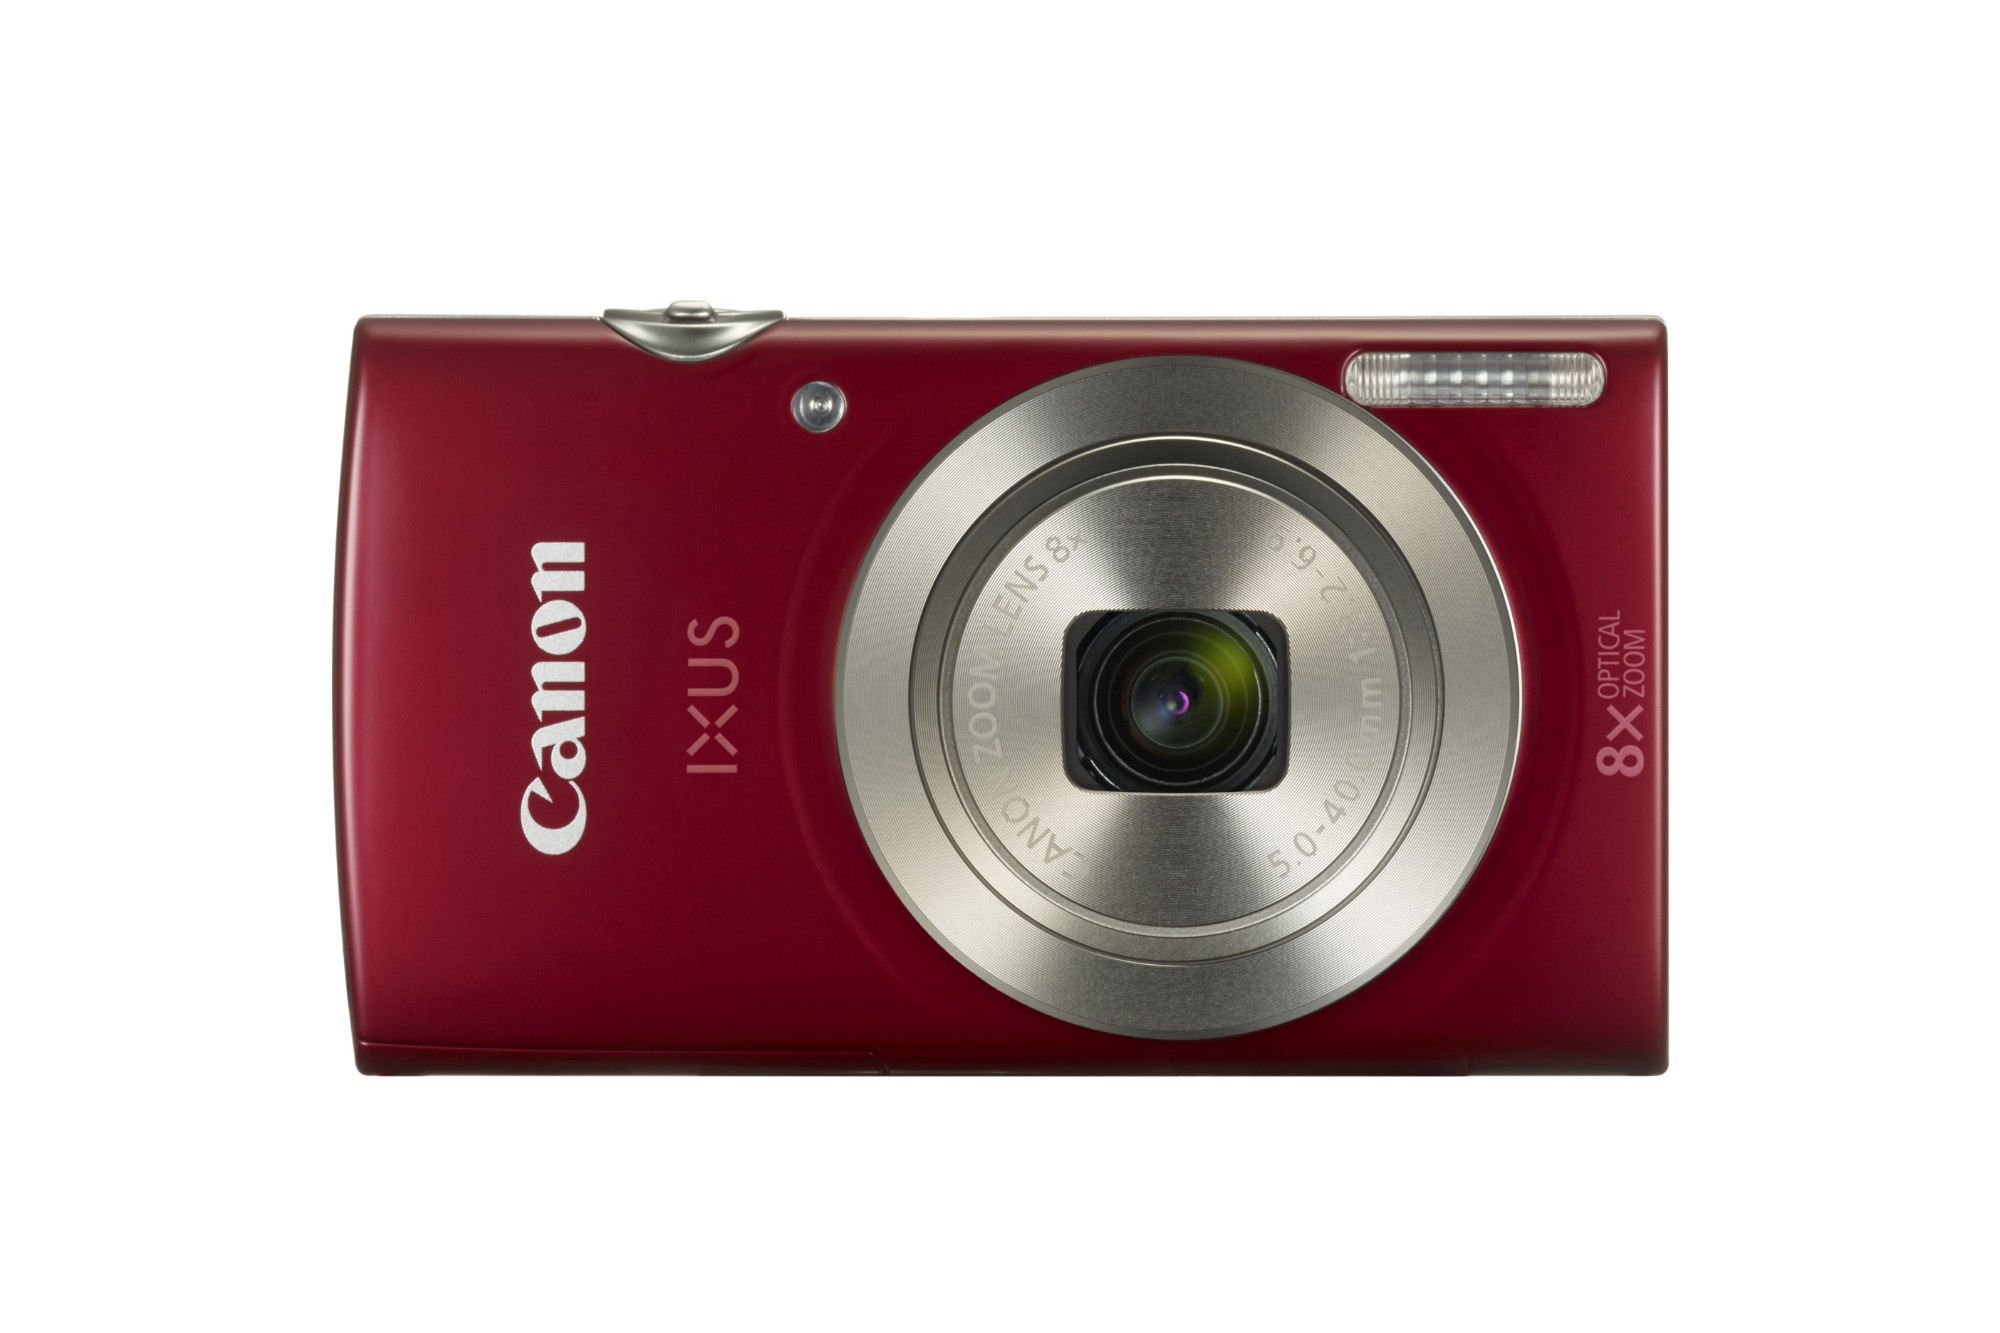 Canon Digital IXUS 185 Compact camera 20 MP CCD 5152 x 3864 pixels 1/2.3